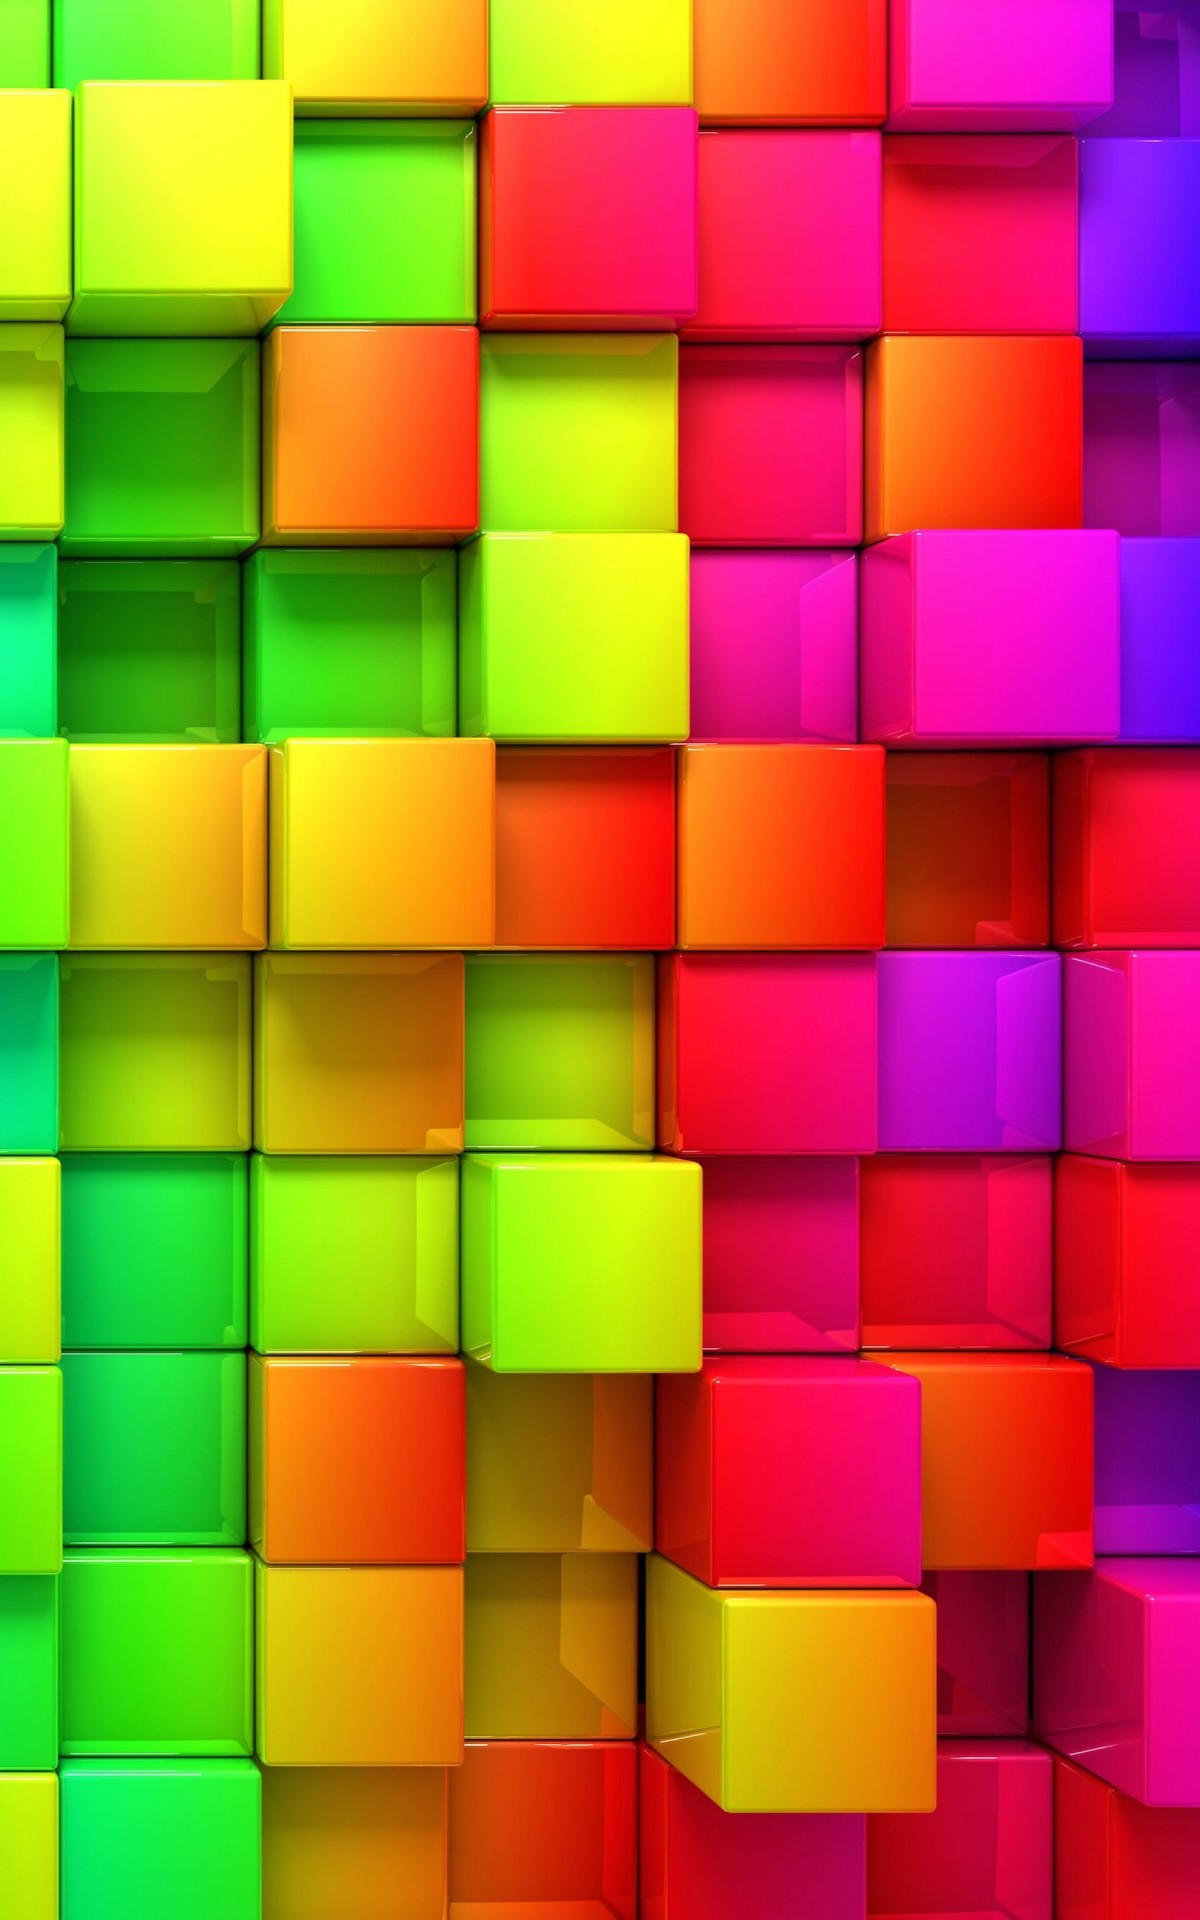 Cubic Rainbow Wallpaper for Amazon Kindle Fire HDX